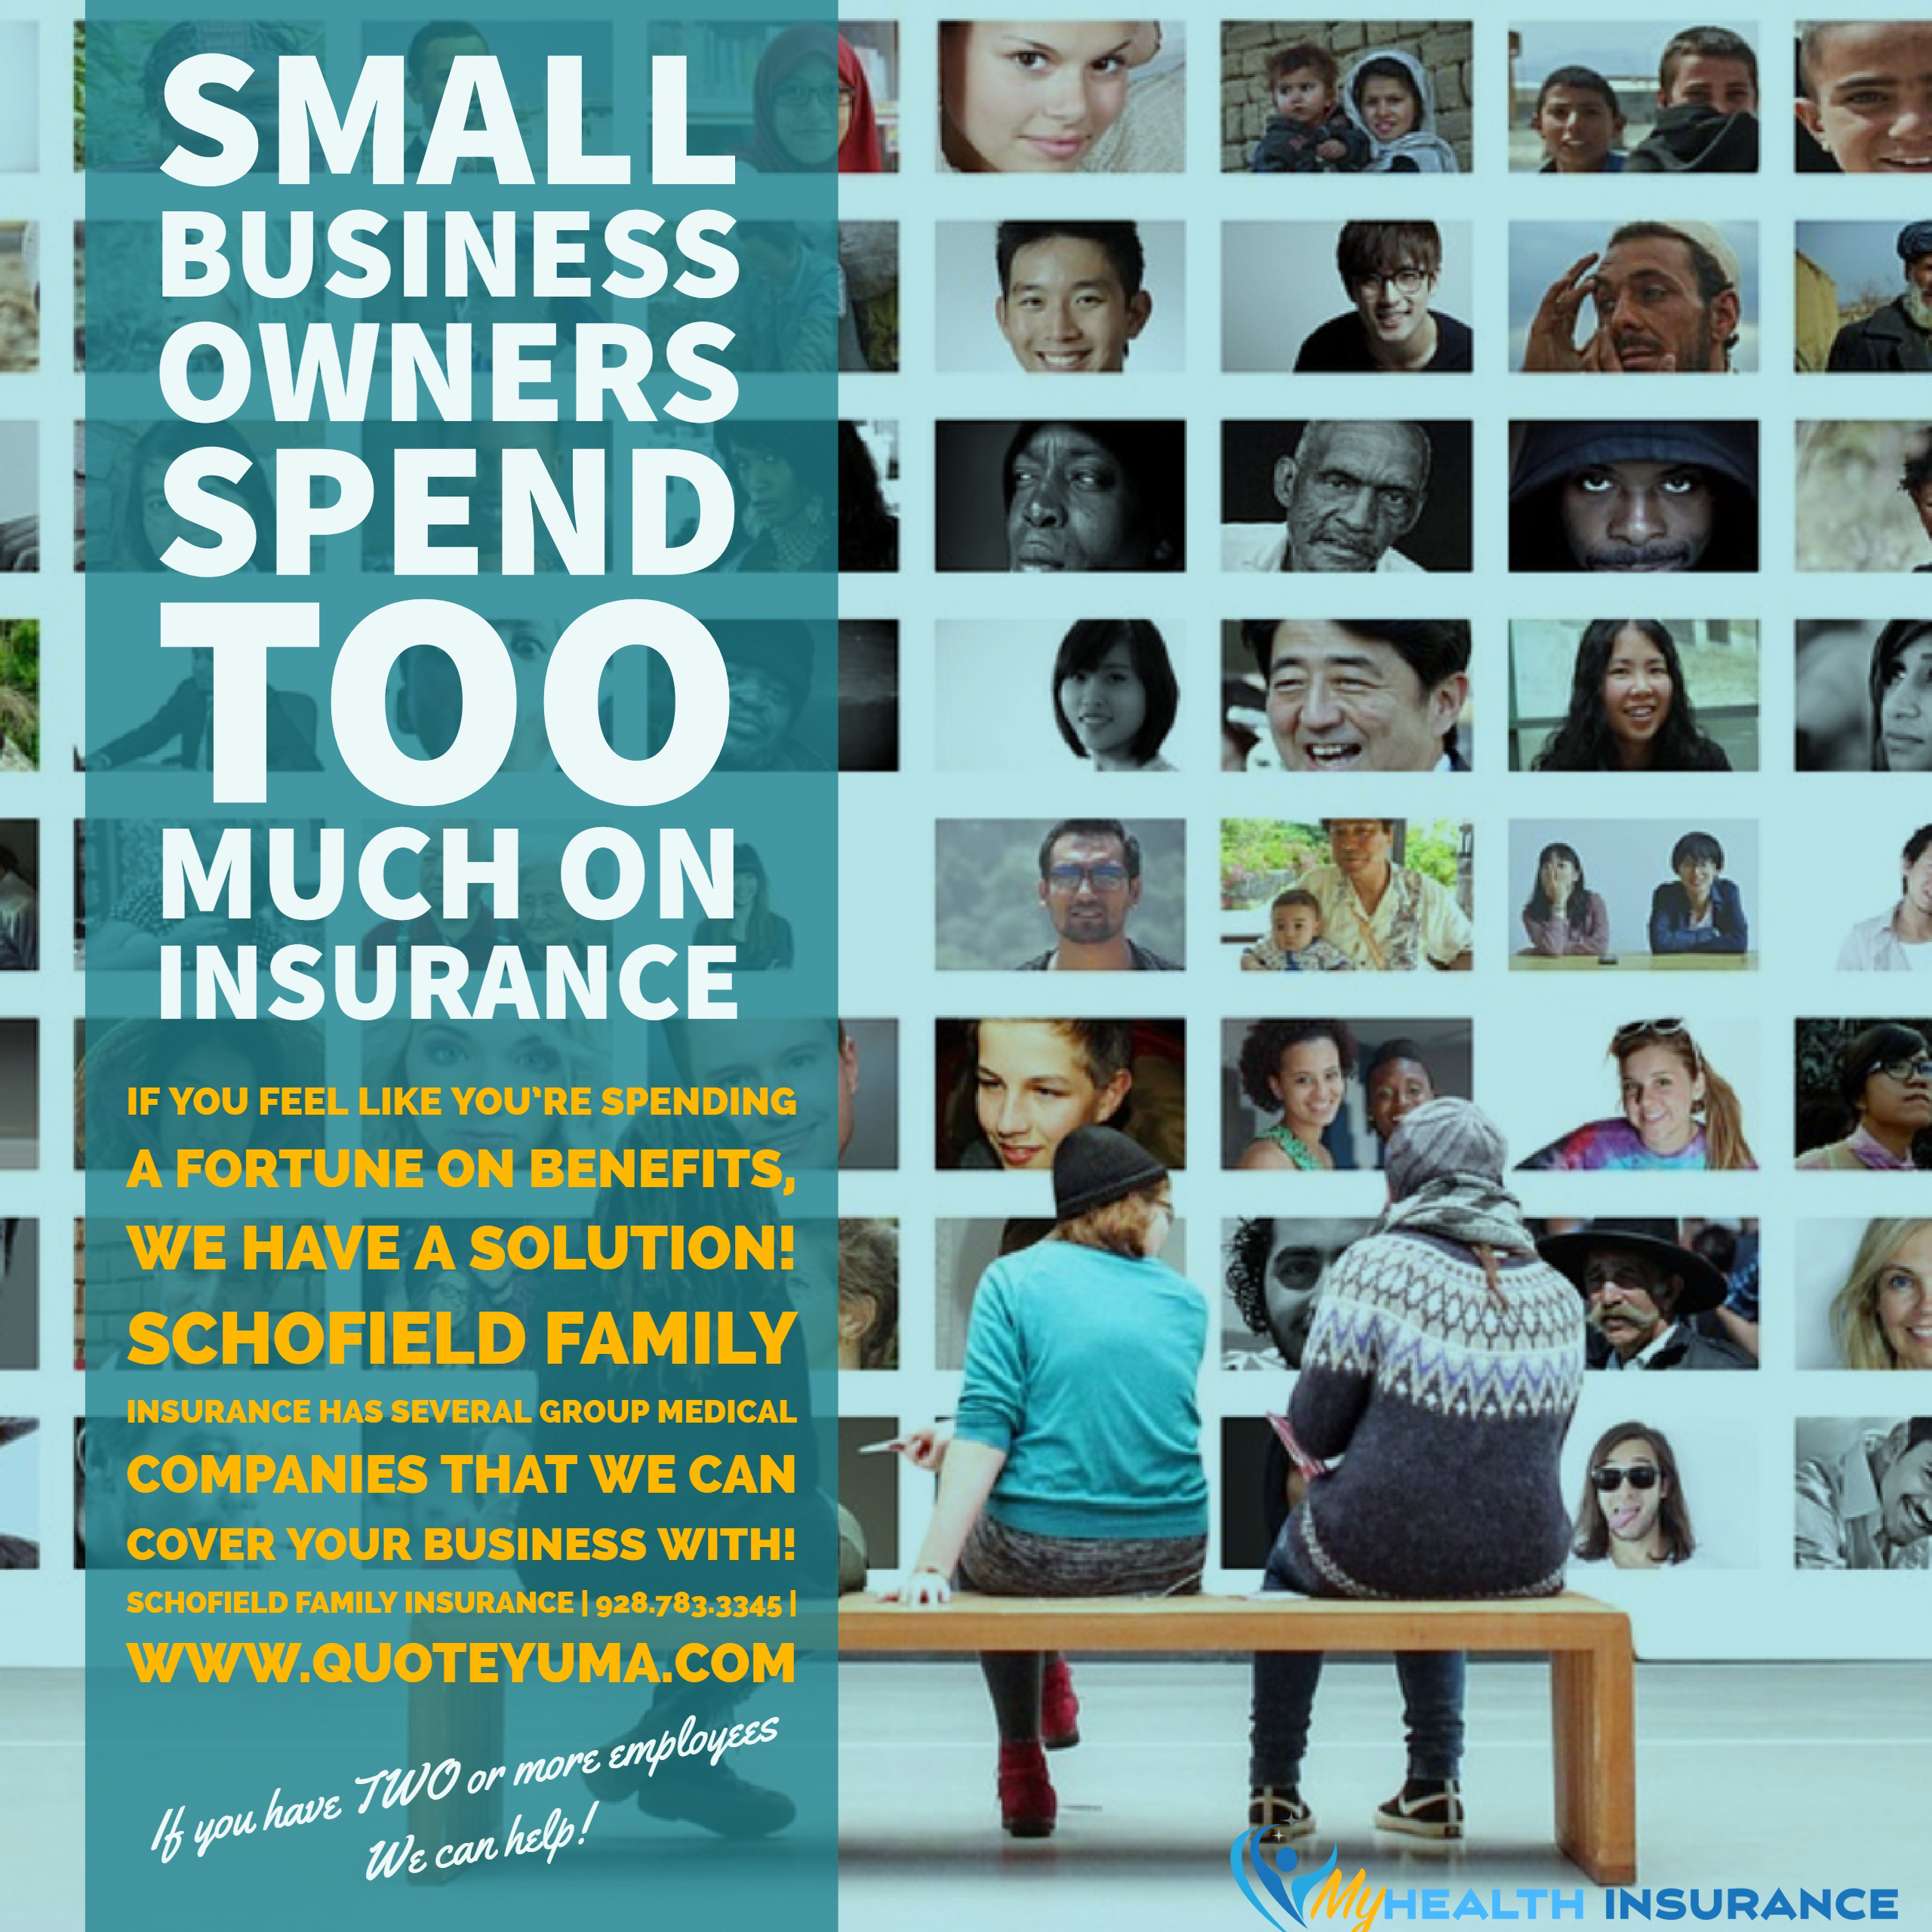 Schofield Family Insurance Small business owners press flyer 2